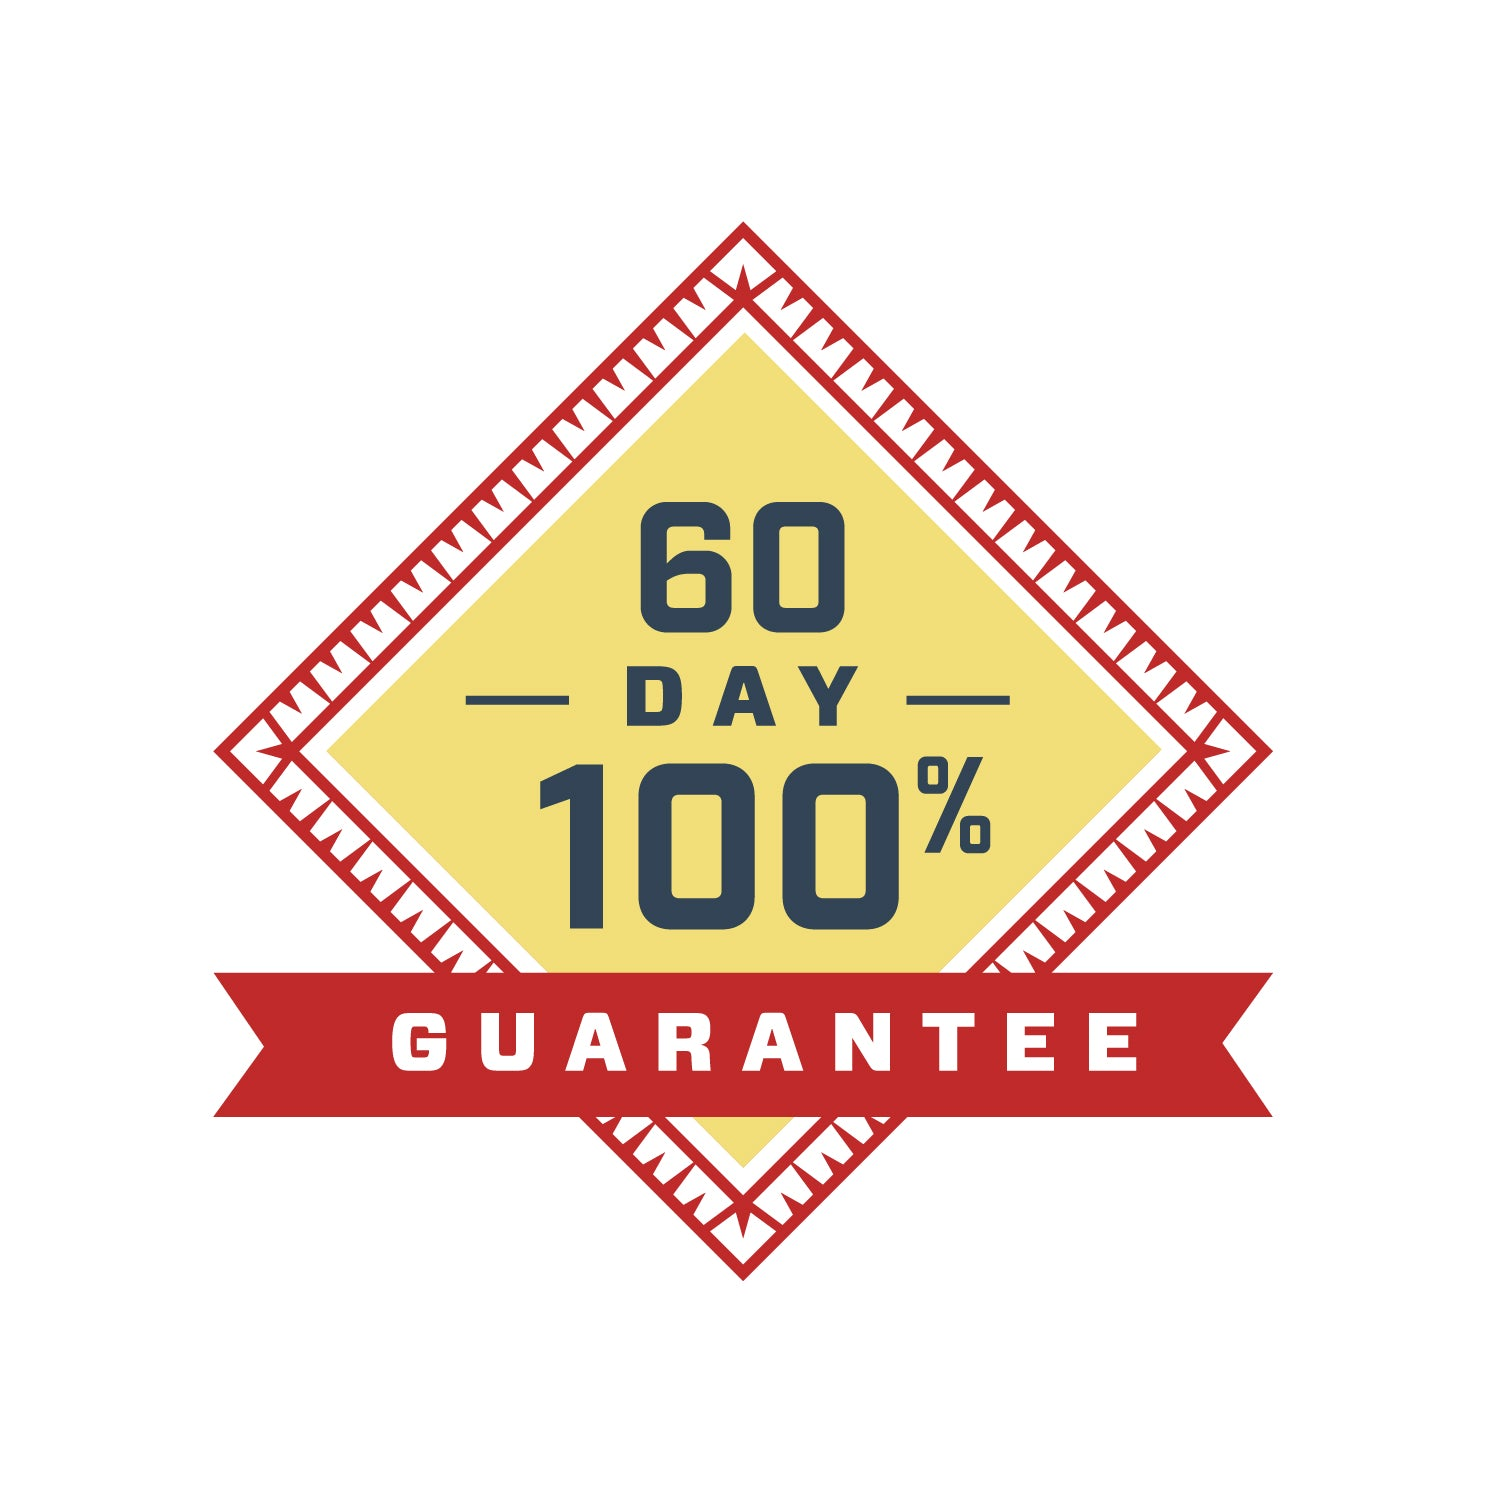 Our bhb exogenous ketone powder comes with a 60 day guarantee